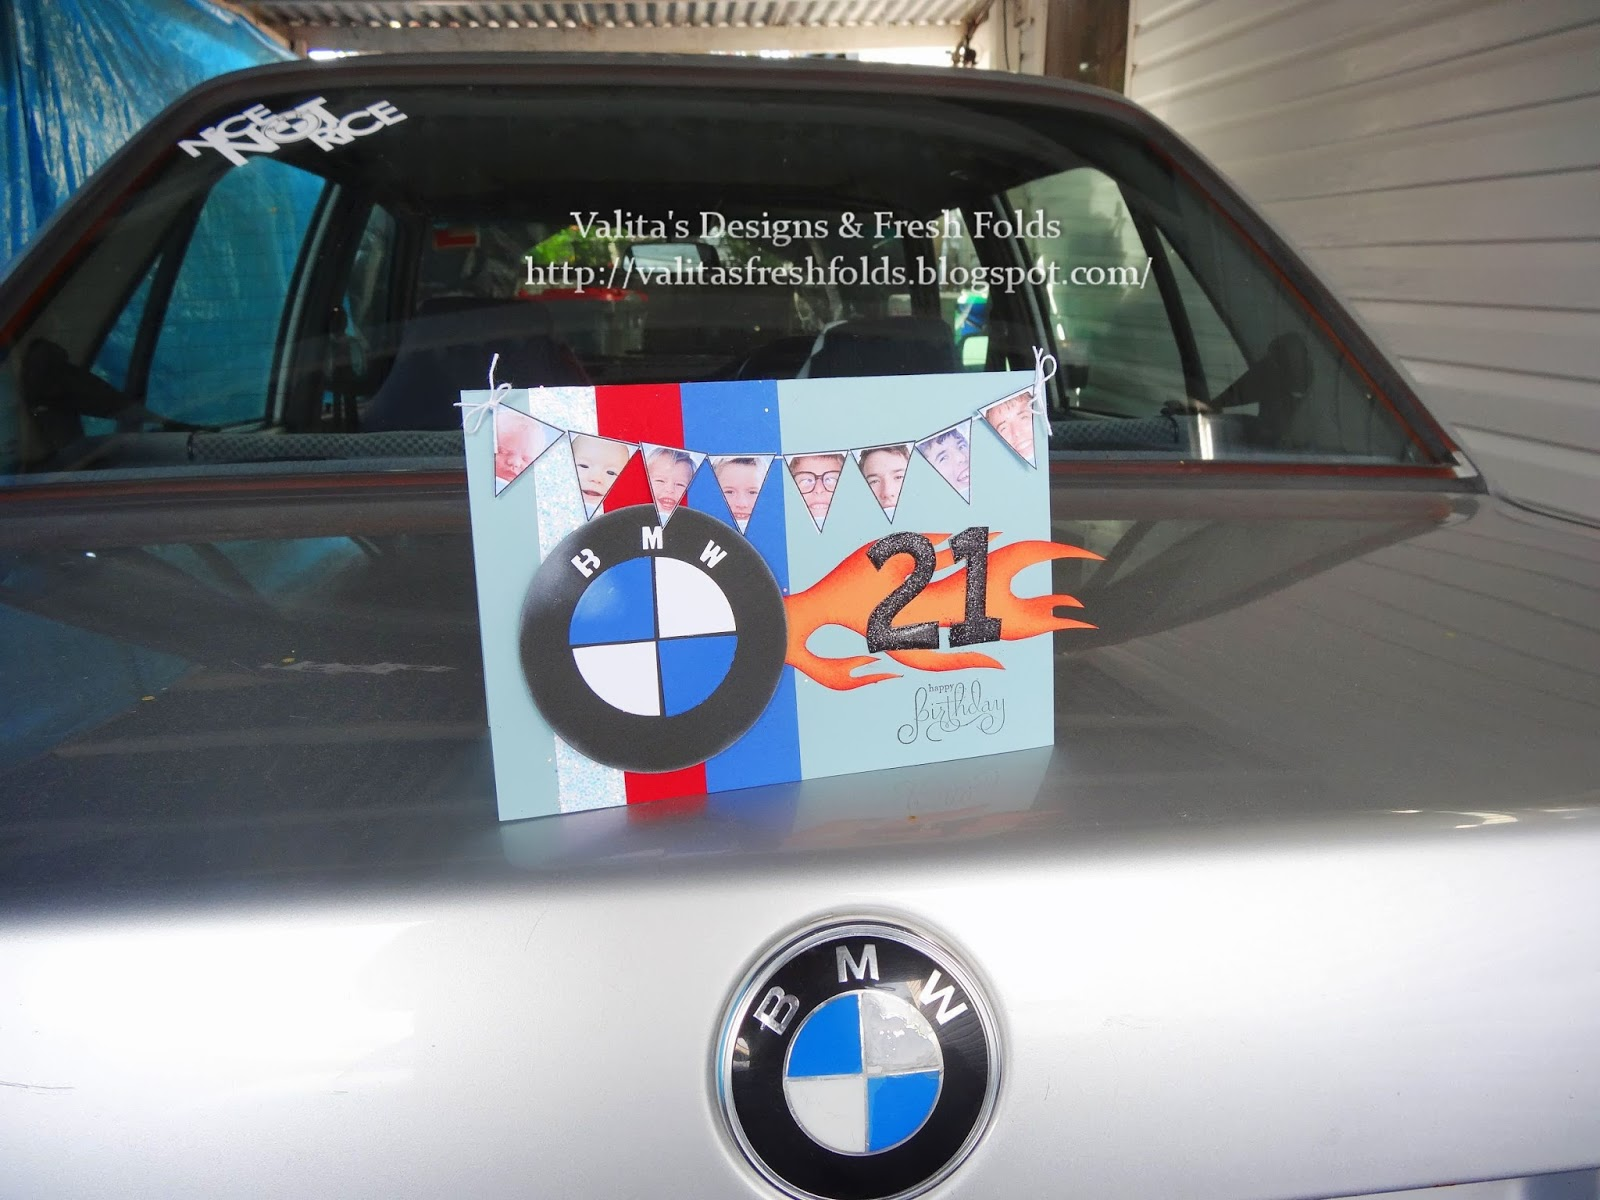 Valitas designs fresh folds bmw card and suprise birthday we recently helped him buy another old school bmw which he loves and that was my inspiration for his card and cake bookmarktalkfo